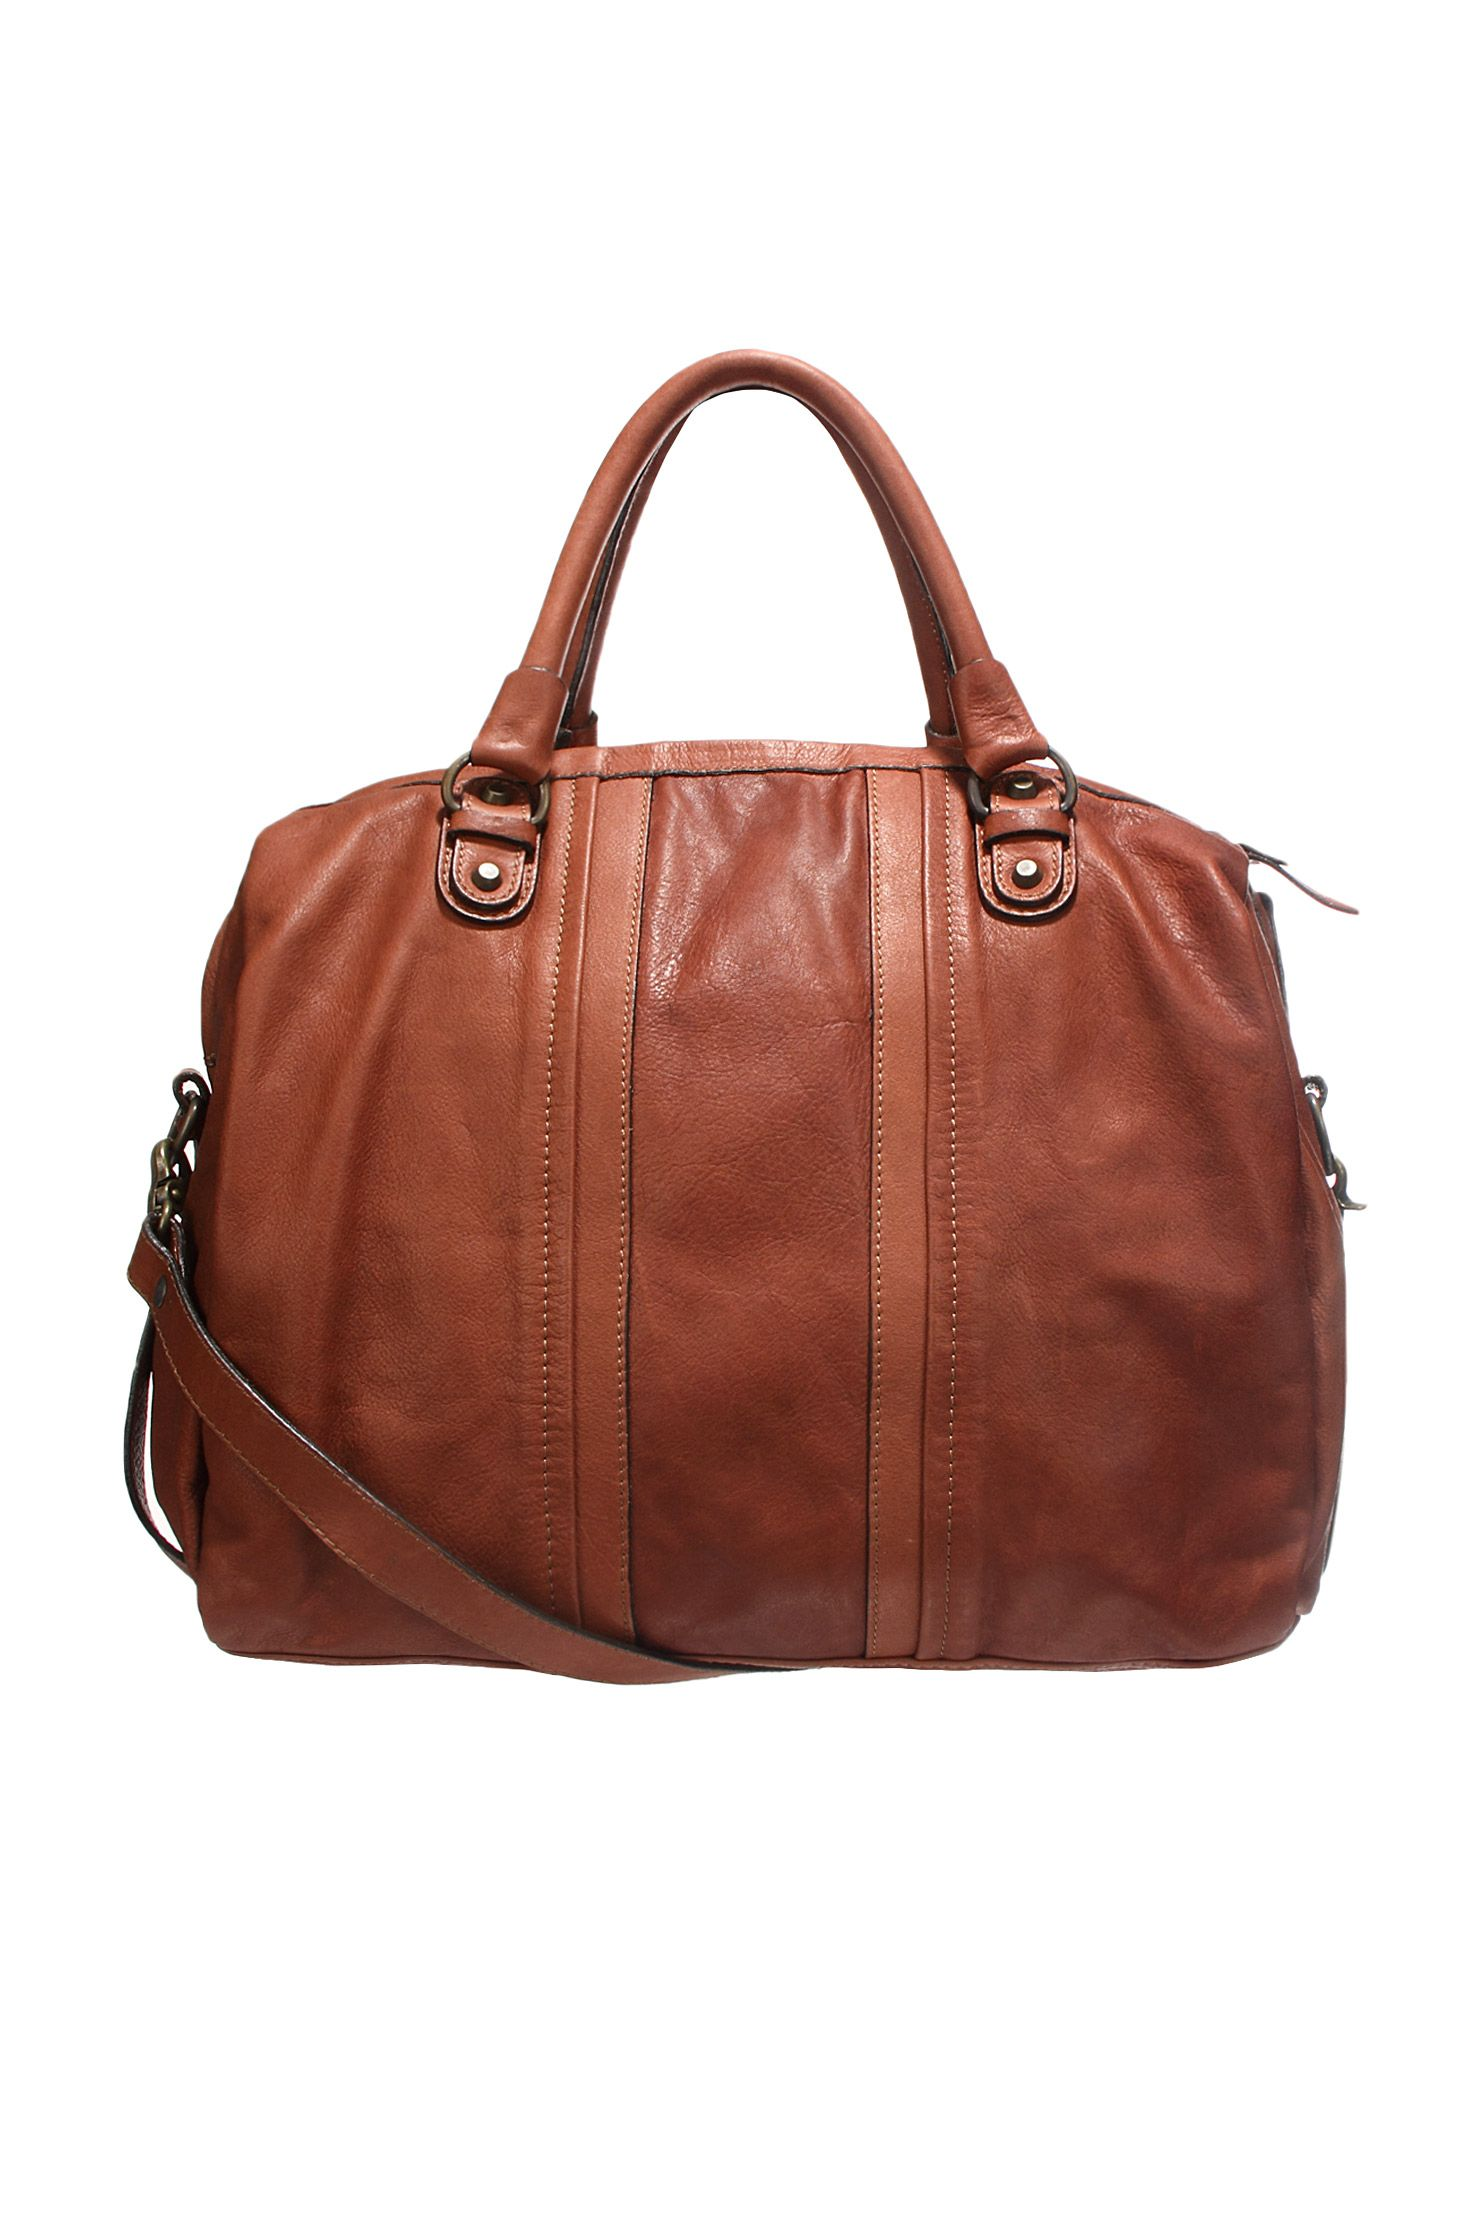 183edc81e81c3 Sac en cuir Lanna Made in France Tarakota Aridza bross sur MonShowroom.com